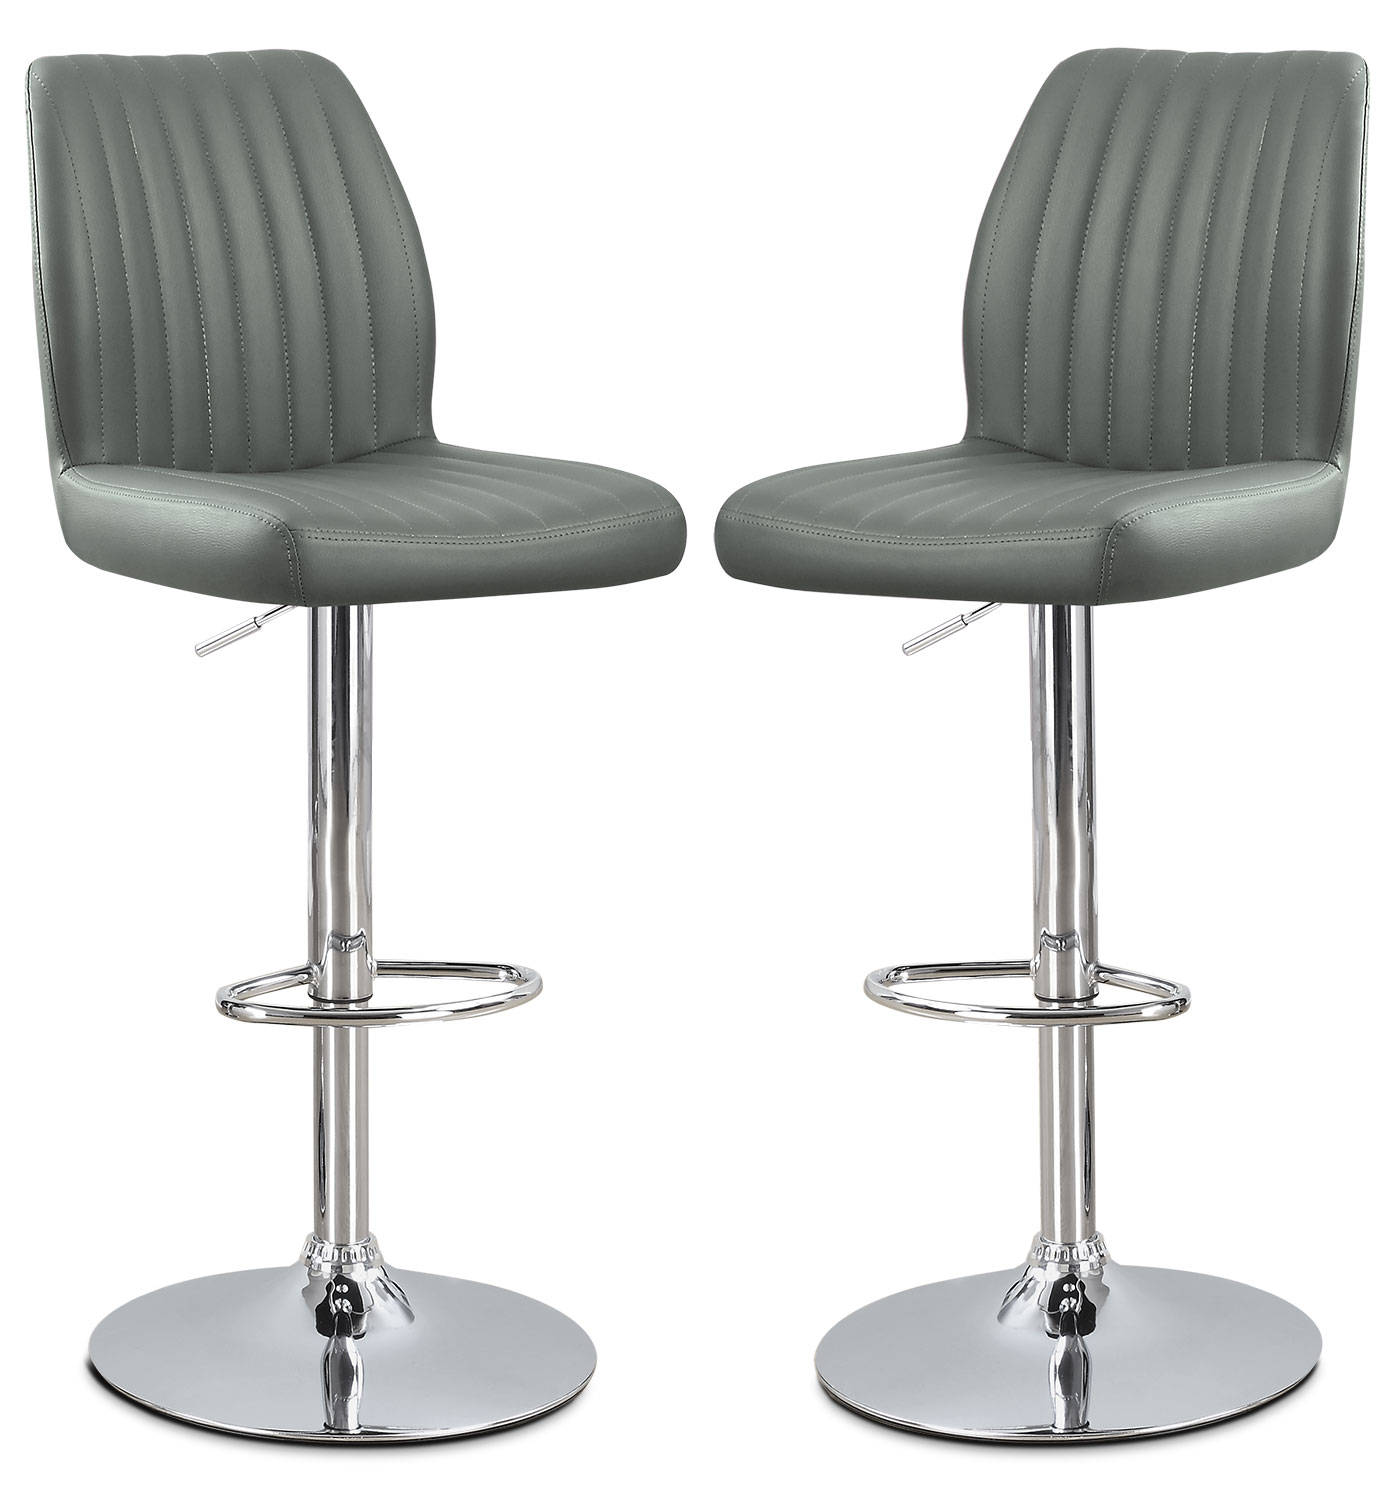 Dining Room Furniture - Monarch Adjustable Bar Stool, Set of 2 – Grey